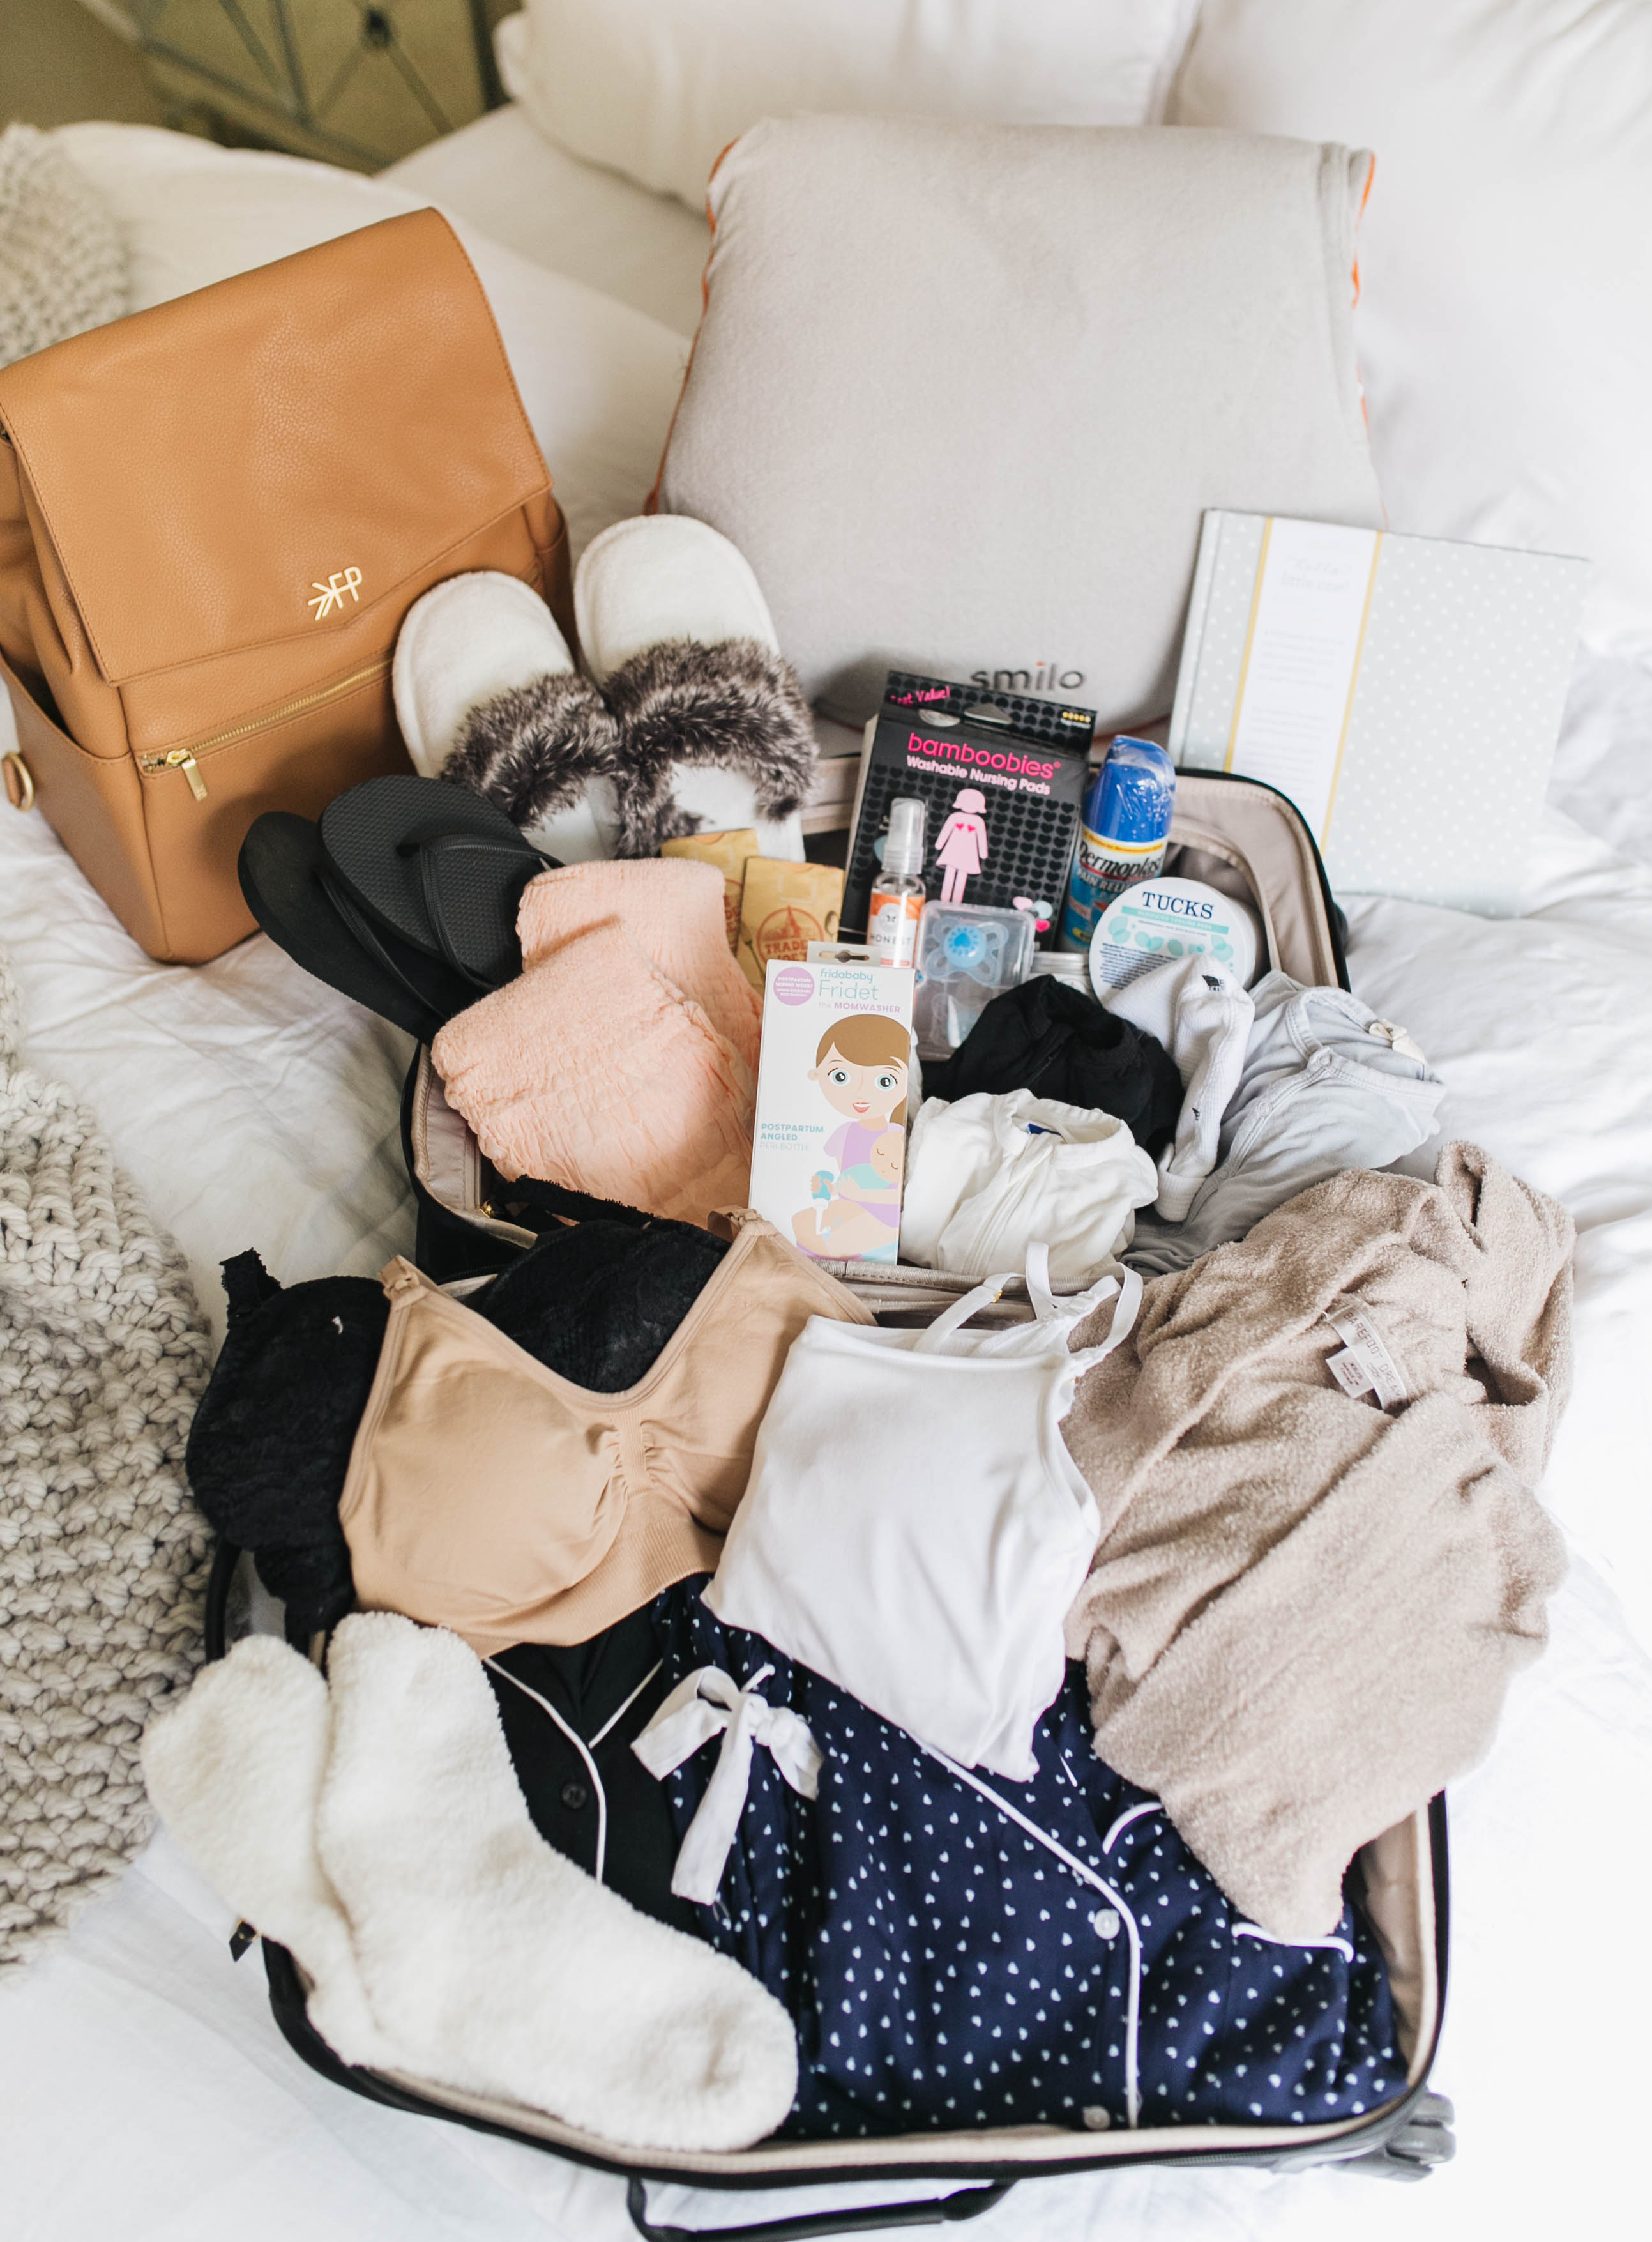 8f0013434c4c3 What I'm Packing in My Hospital Bag | Something Beautiful